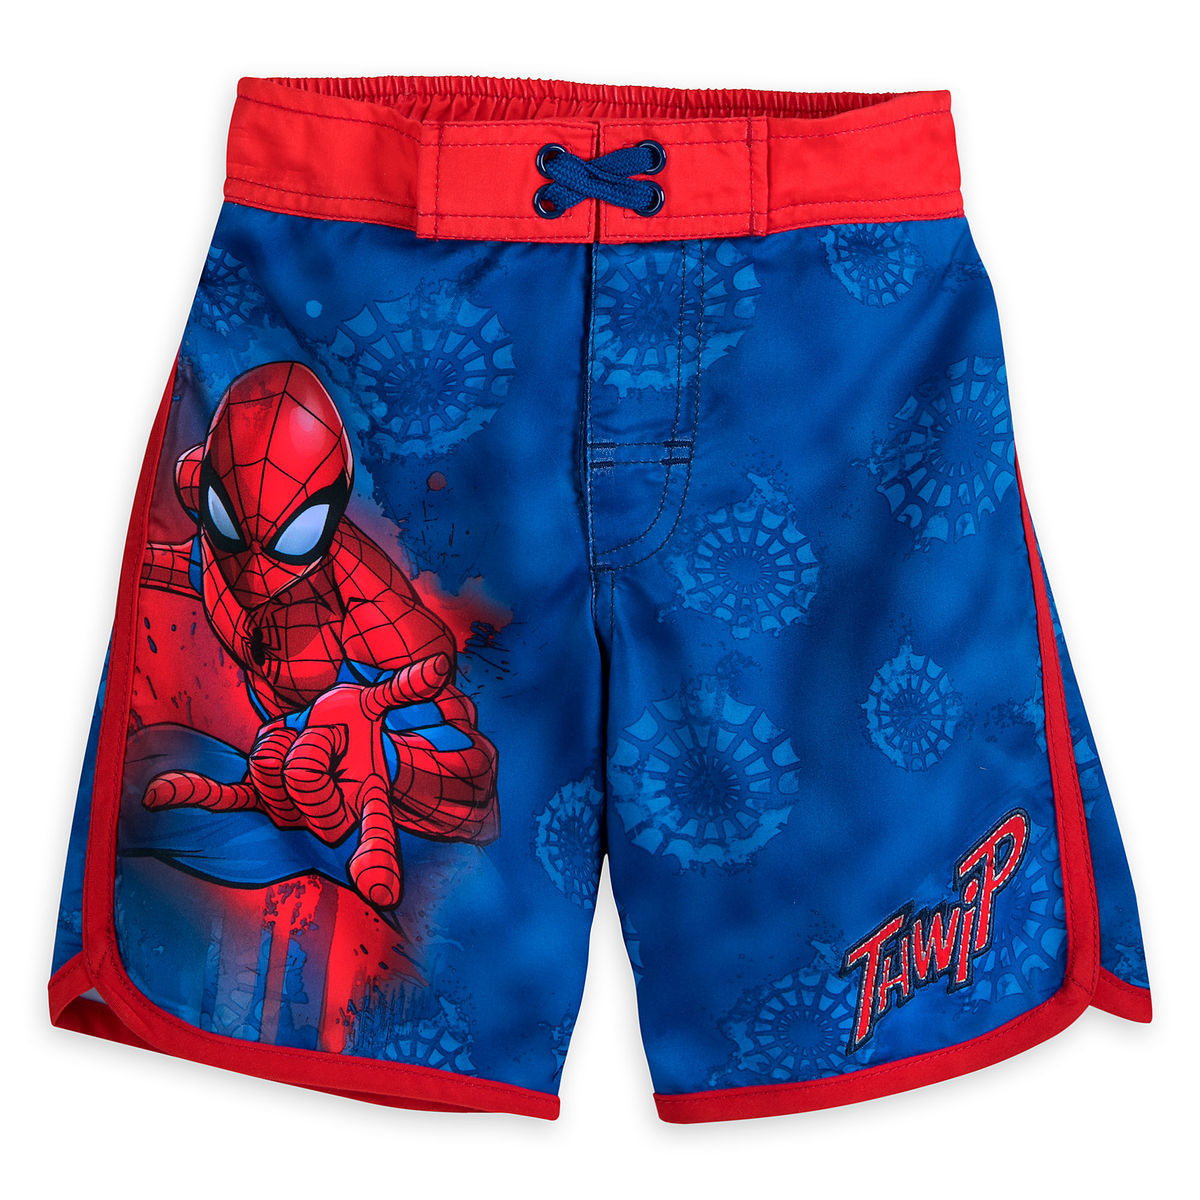 c11fce4ae0a58 Product Image of Spider-Man Swim Trunks for Boys   1